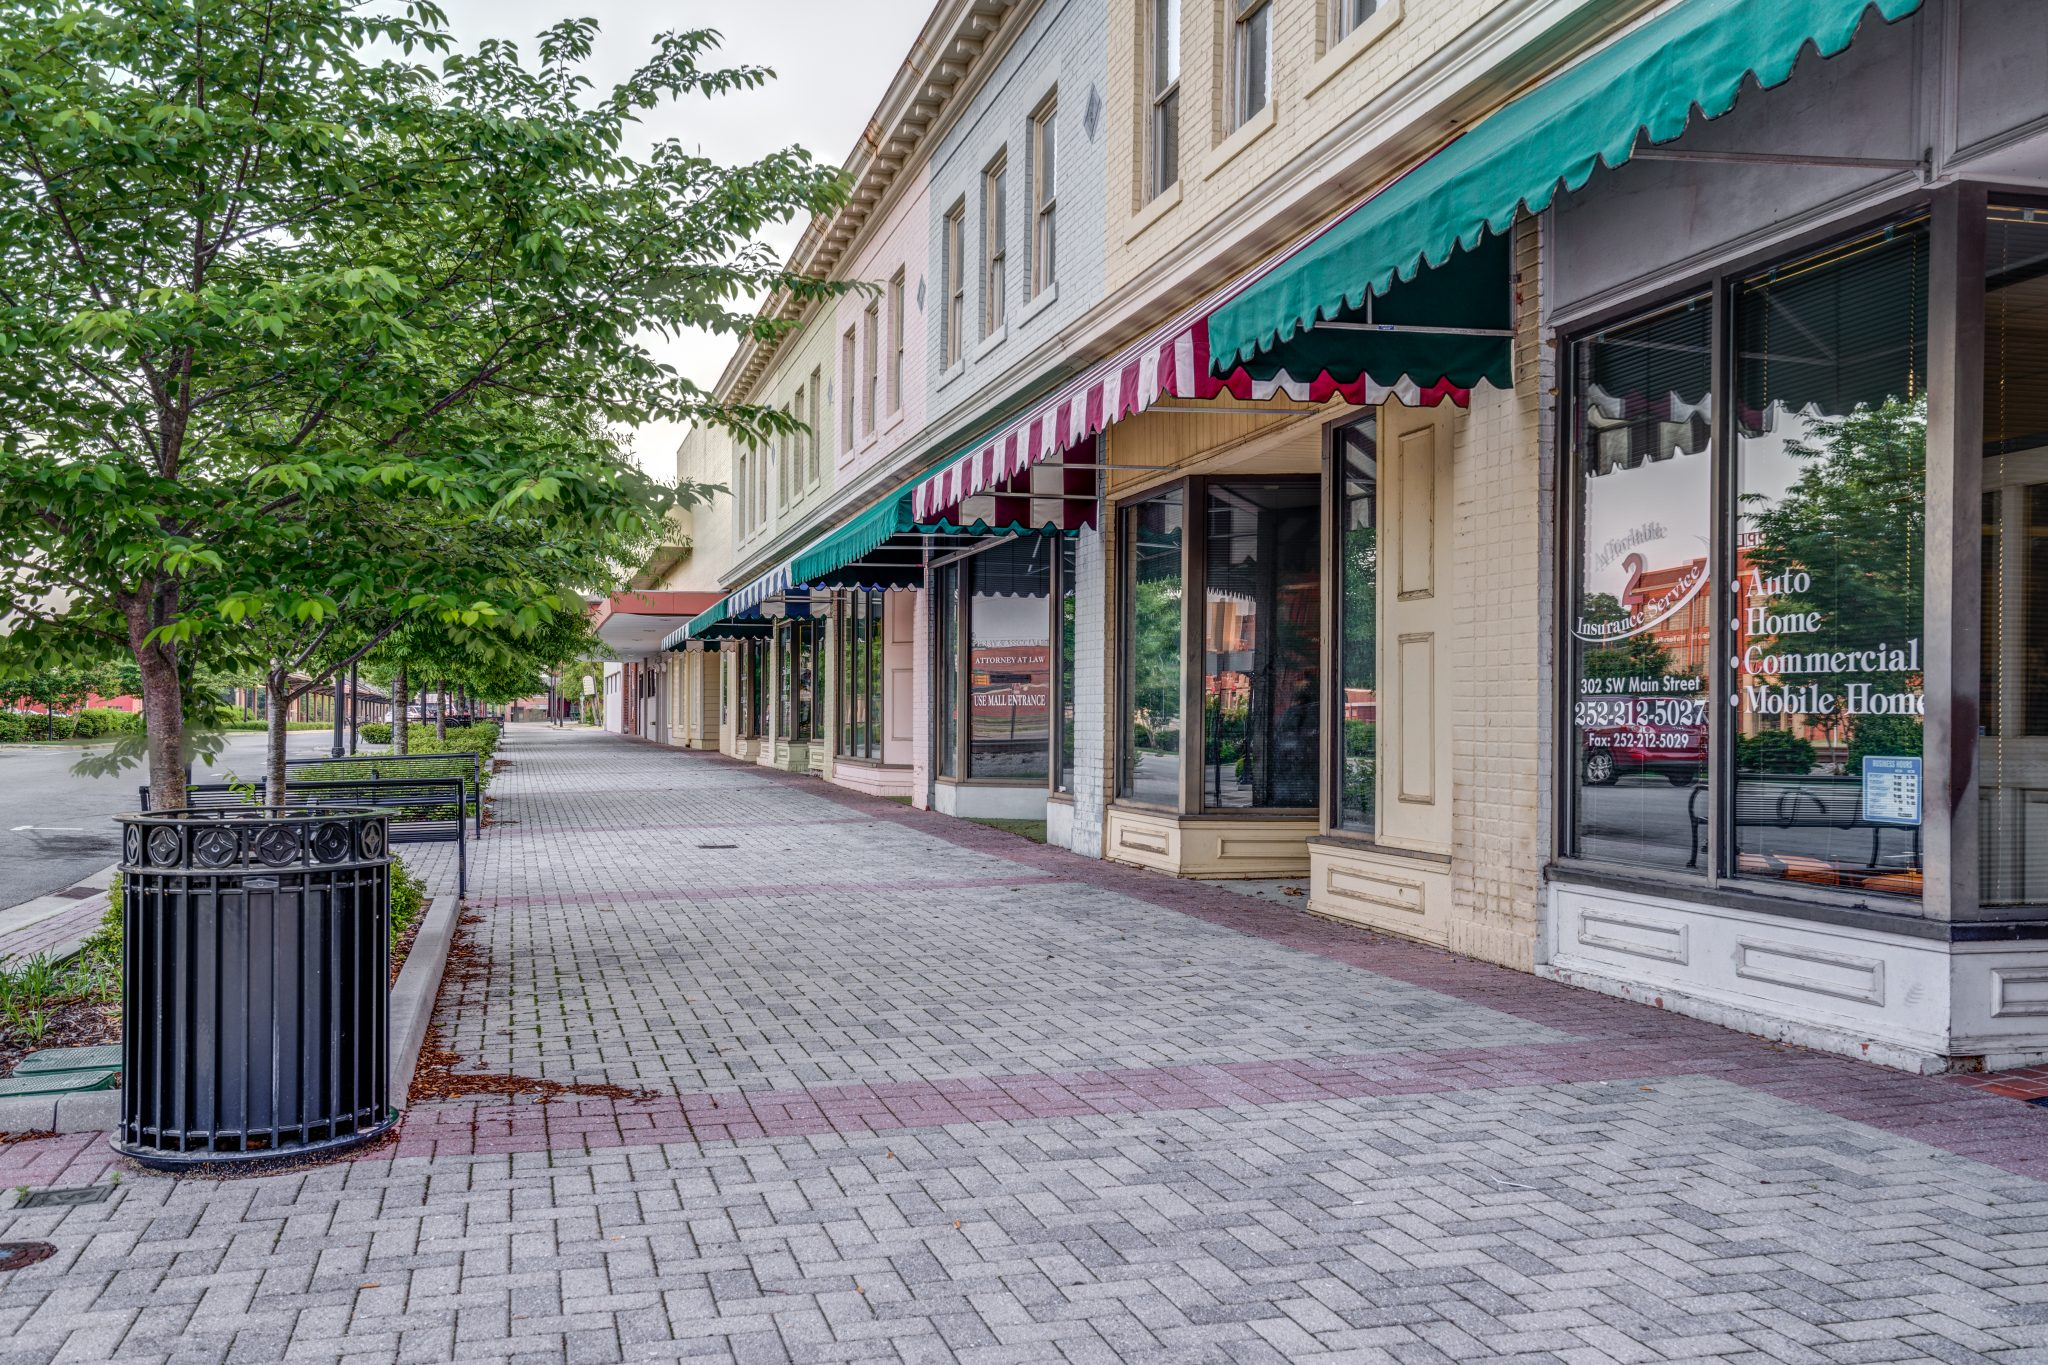 Station Square - Rocky Mount, NC